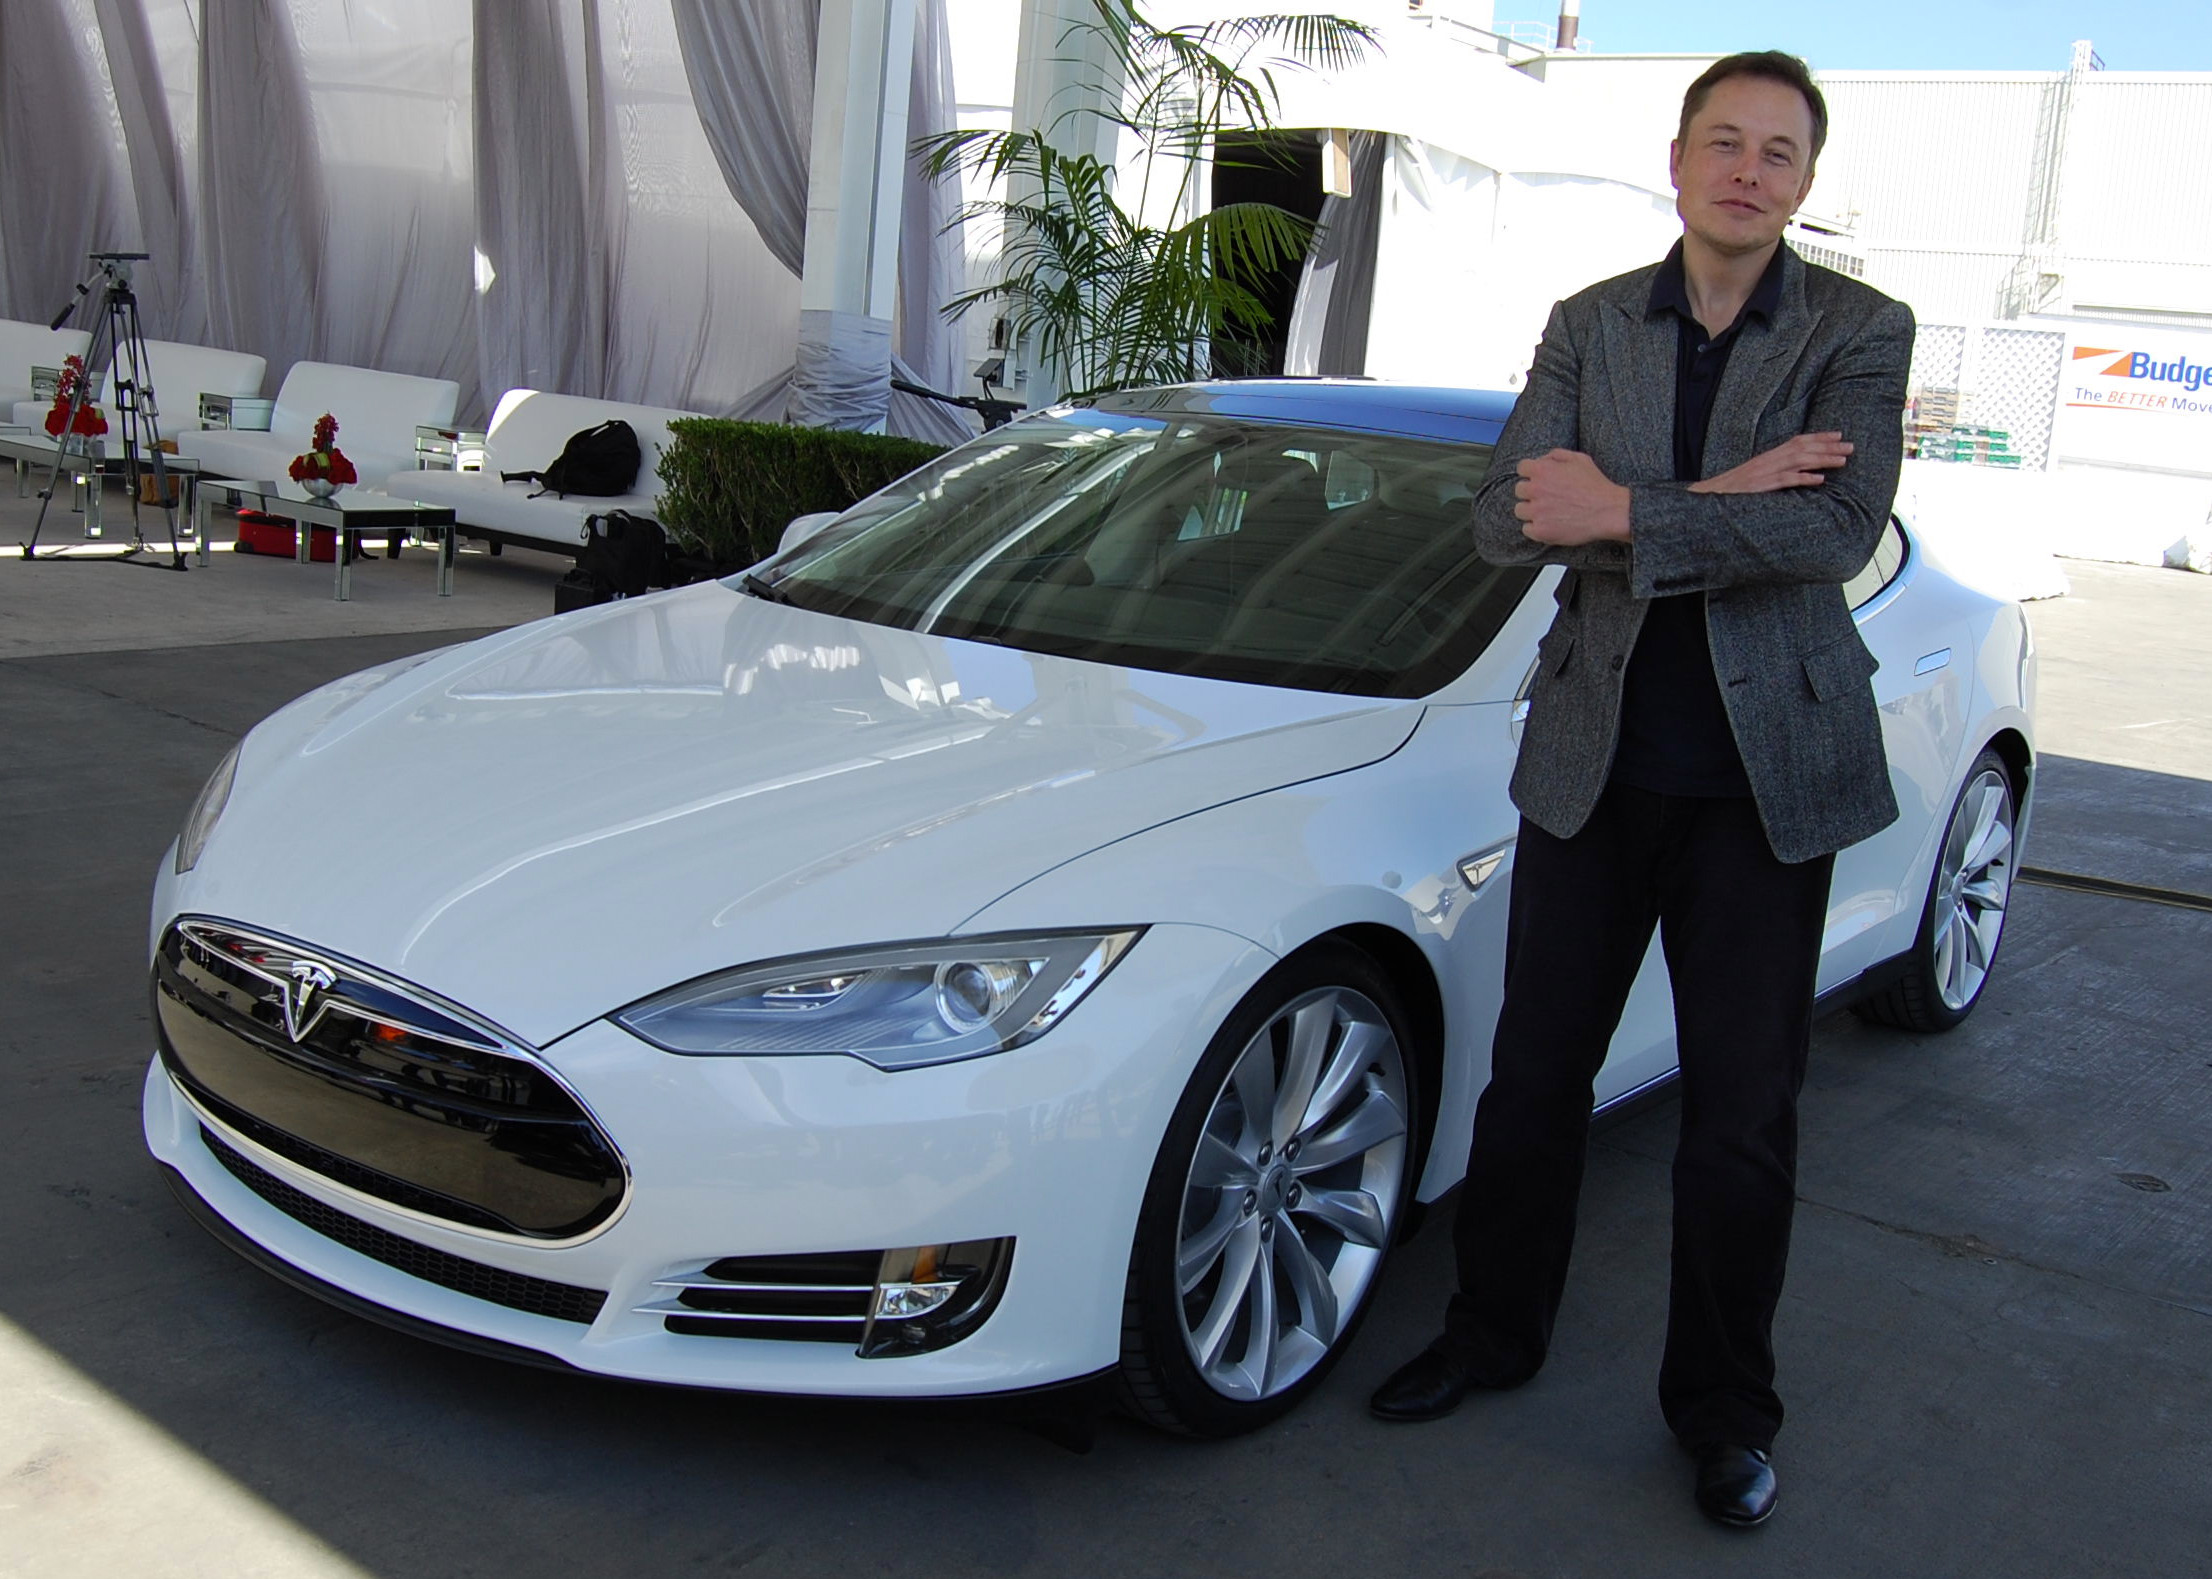 Musk Tesla The Elon Musk Tweets About Taking Tesla Private Shares Spike